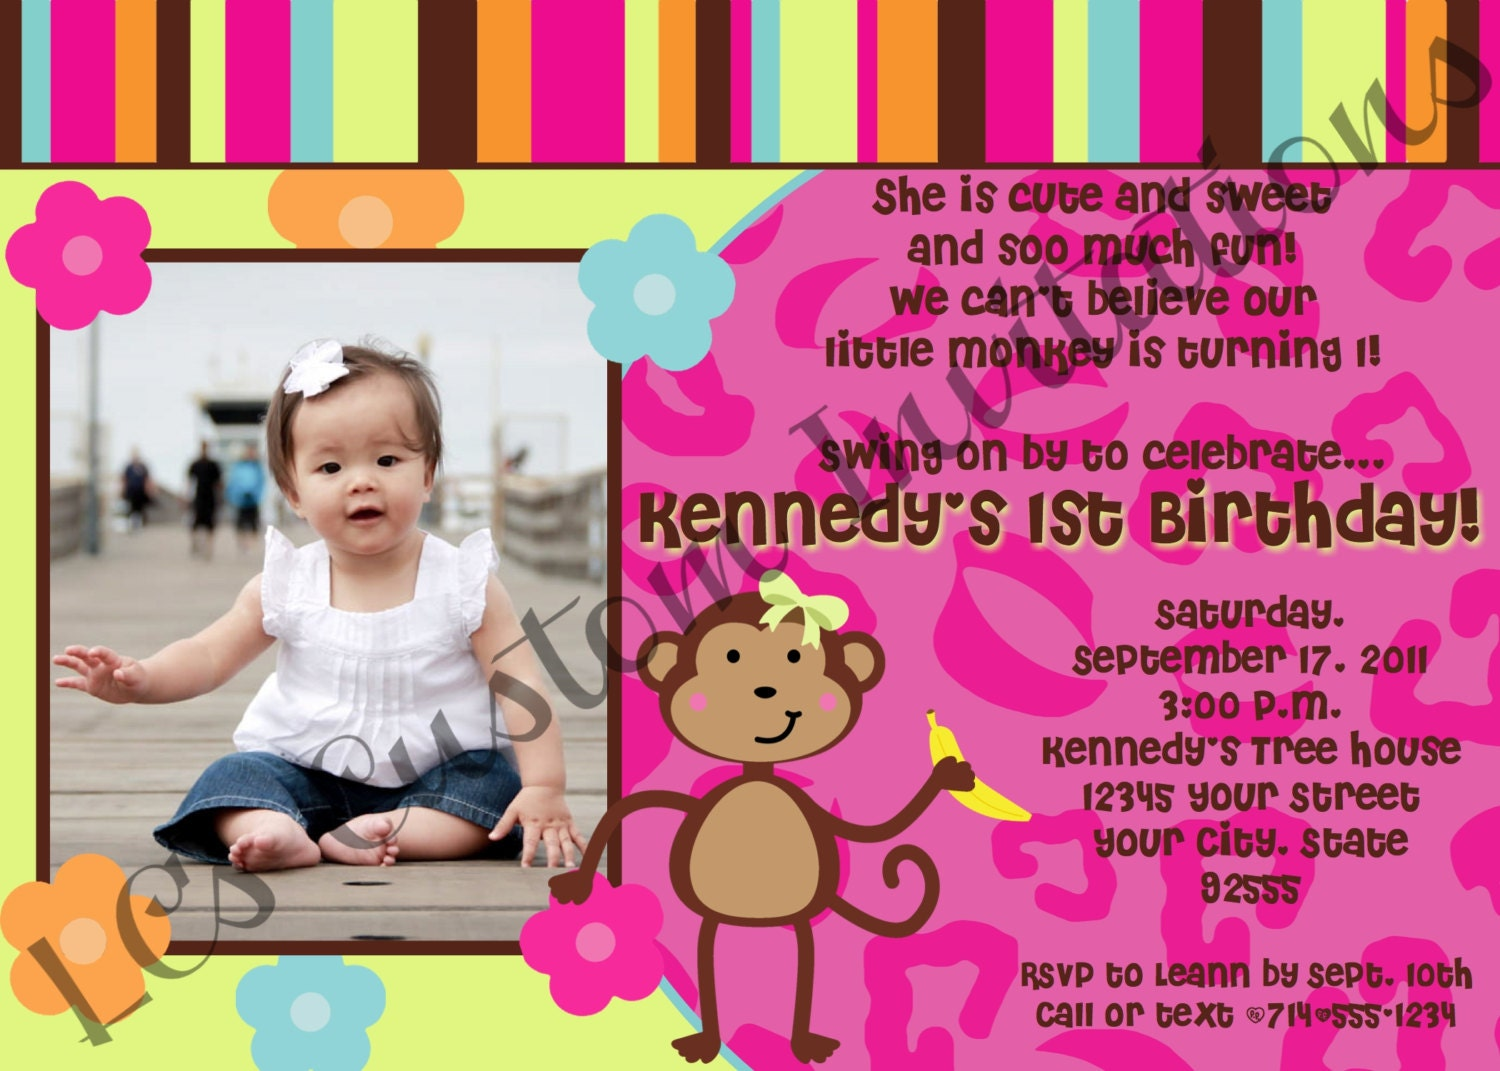 Monkey love party invitations - photo#19